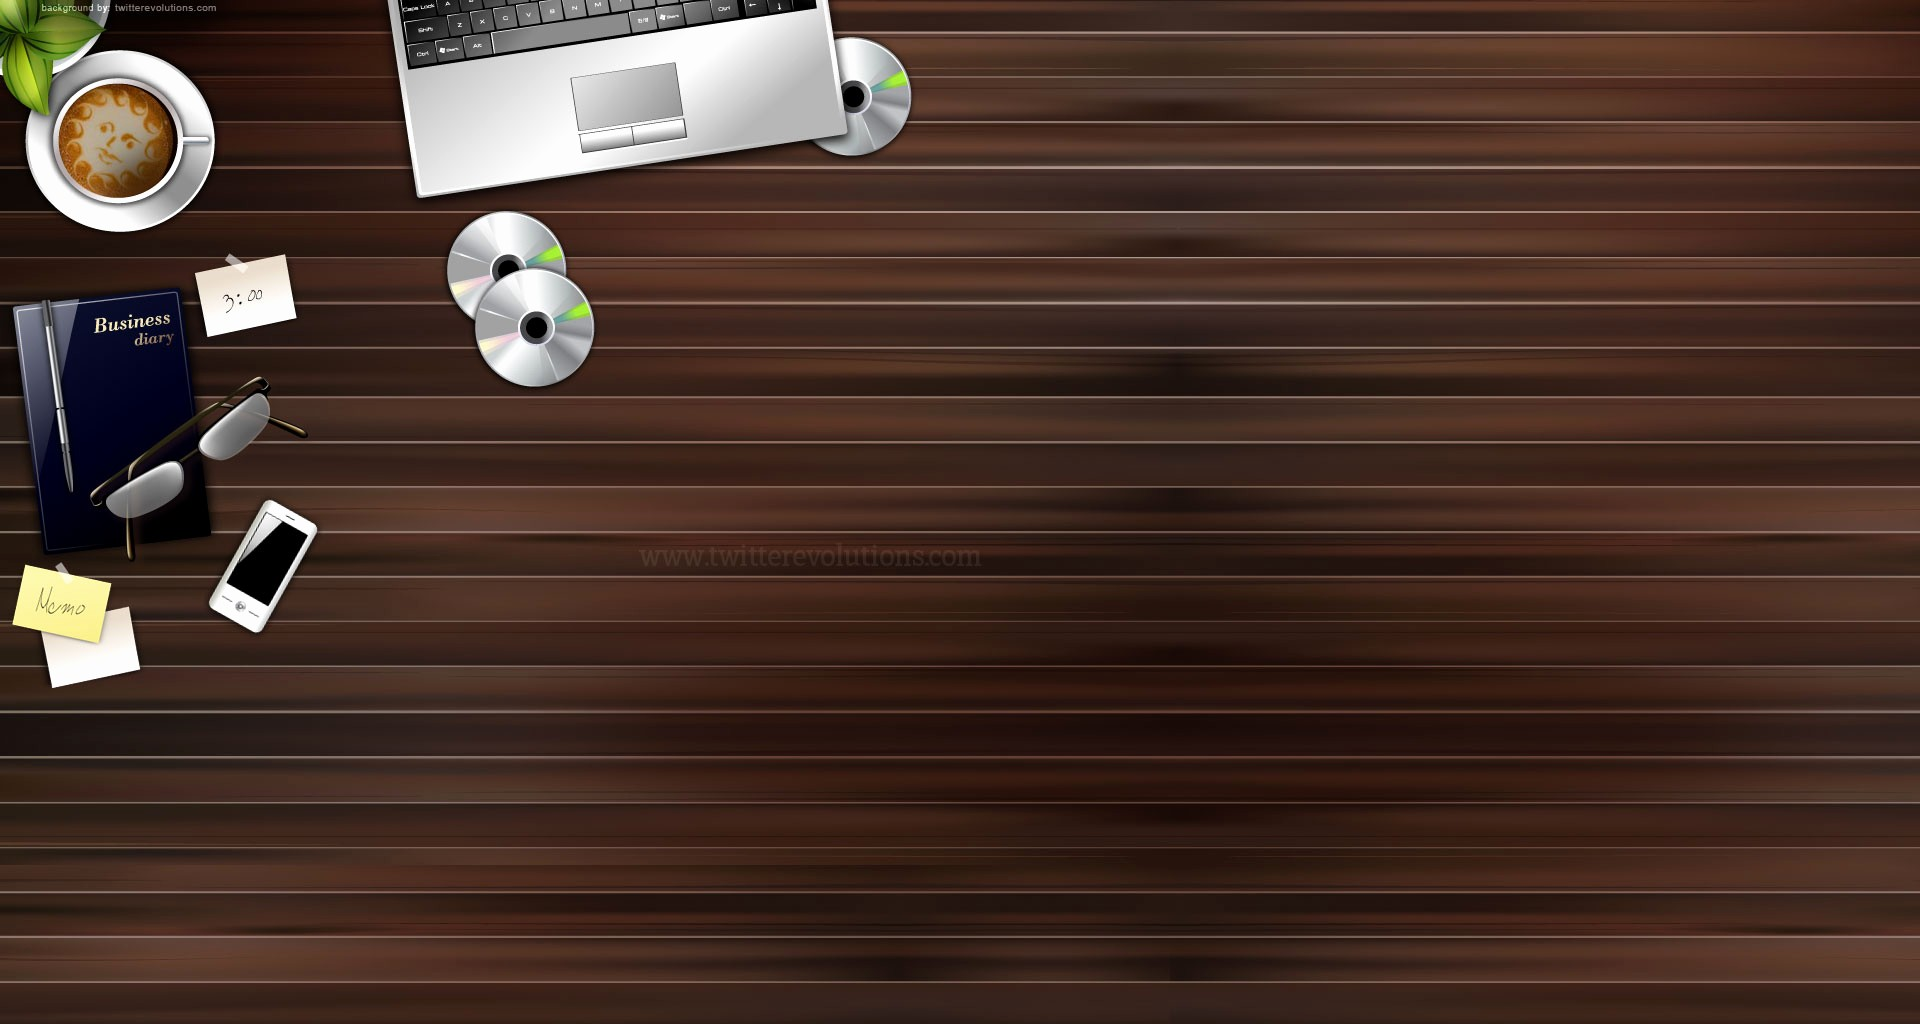 Office 2013 Background theme Download Lovely Fice Background Wallpaper Wallpapersafari